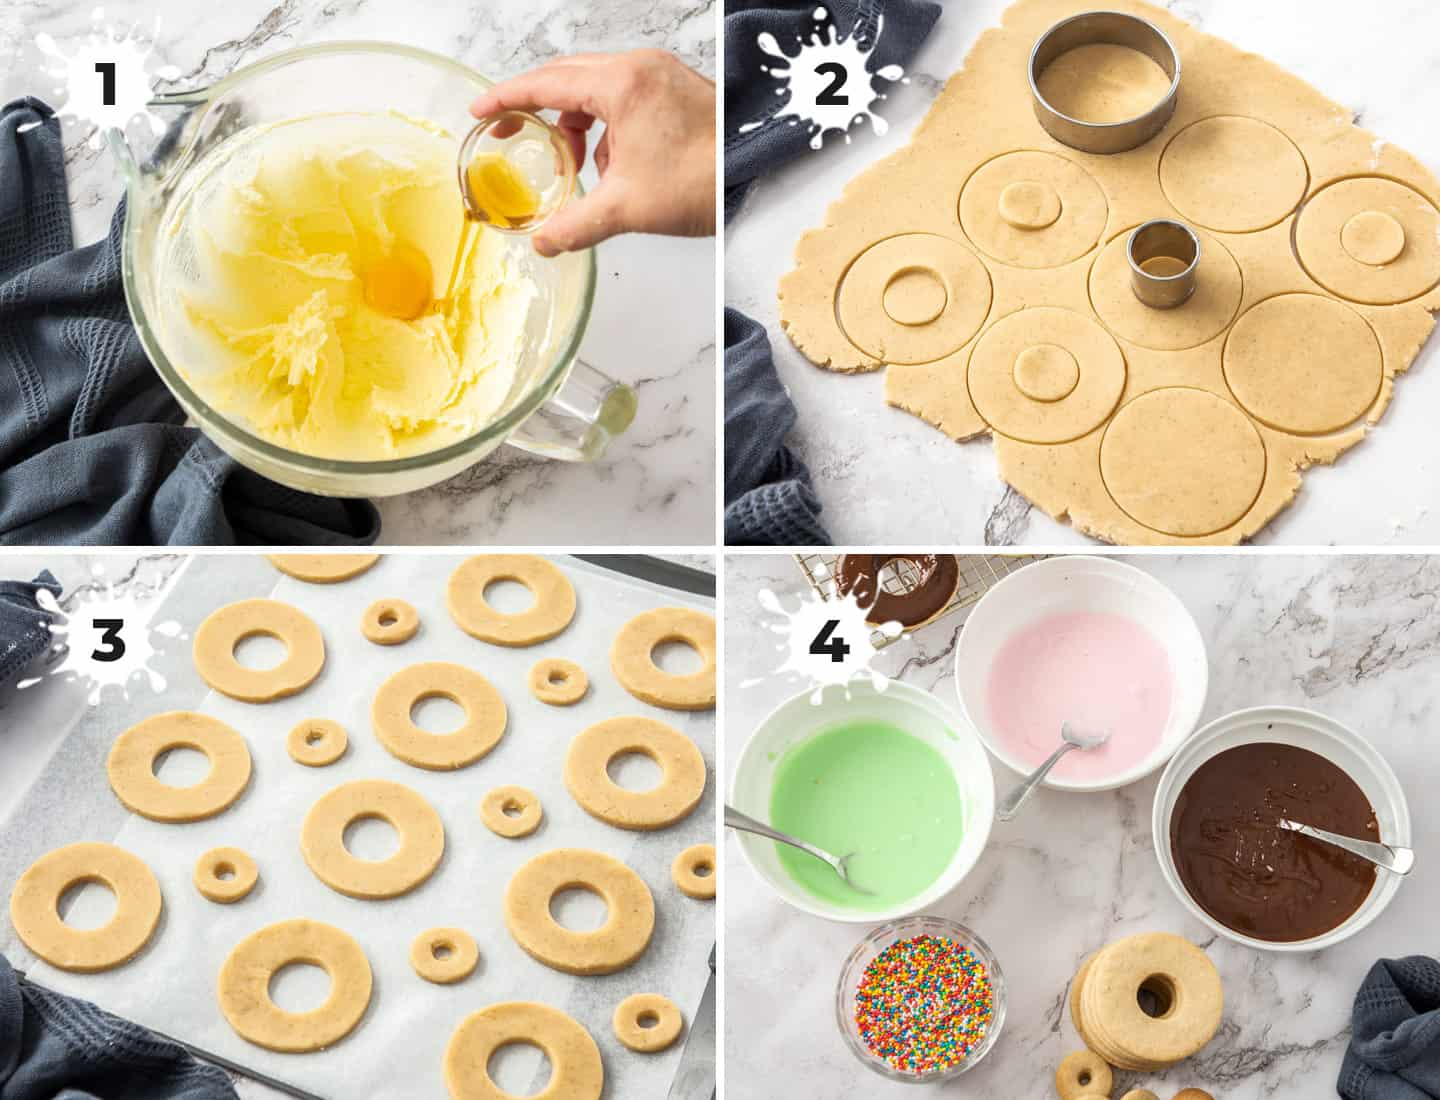 4 images showing the steps to making donut cookies.